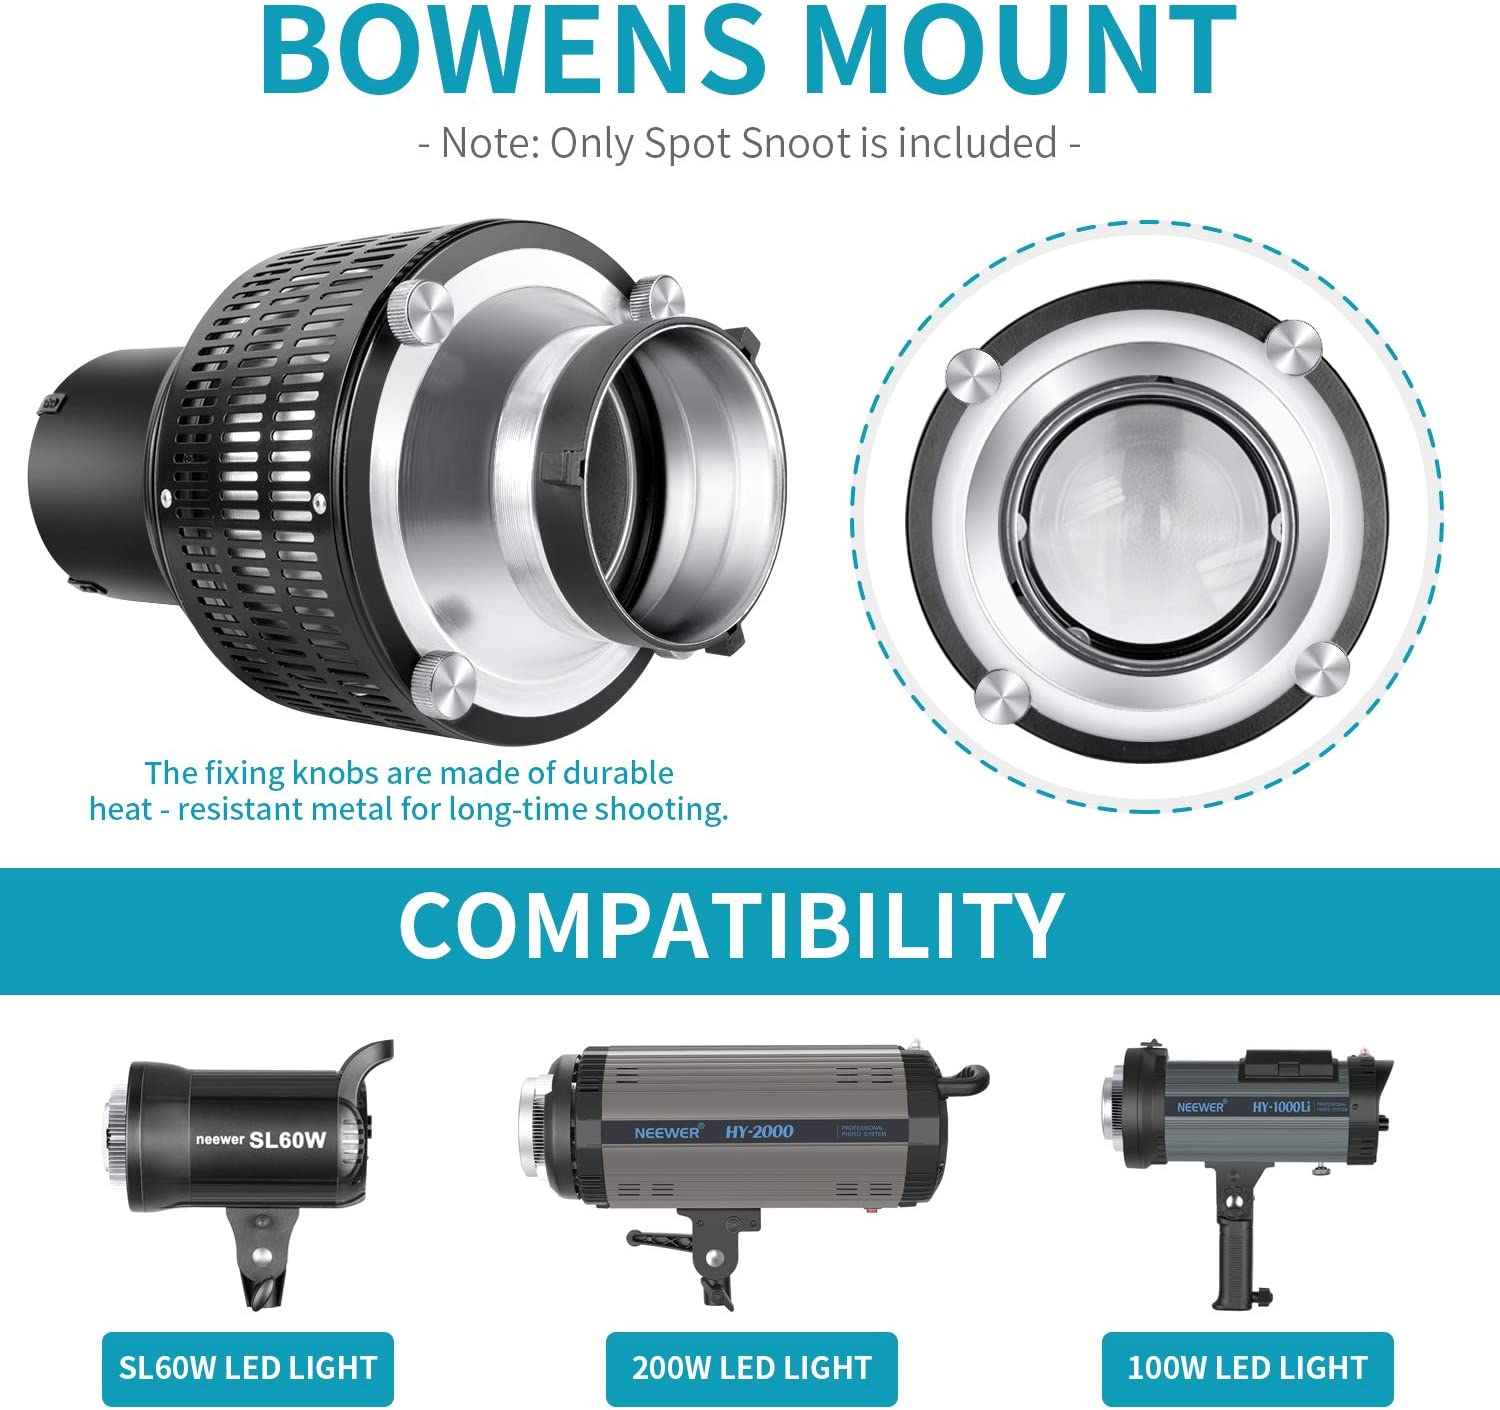 Neewer Aluminium Alloy Studio Conical Spot Snoot with Bowens Mount for Monolight Photography LED Light SL-60W SL-150W 200W etc 5 Color Filters and 9 Graphics Cards Included for Spotlight Effect